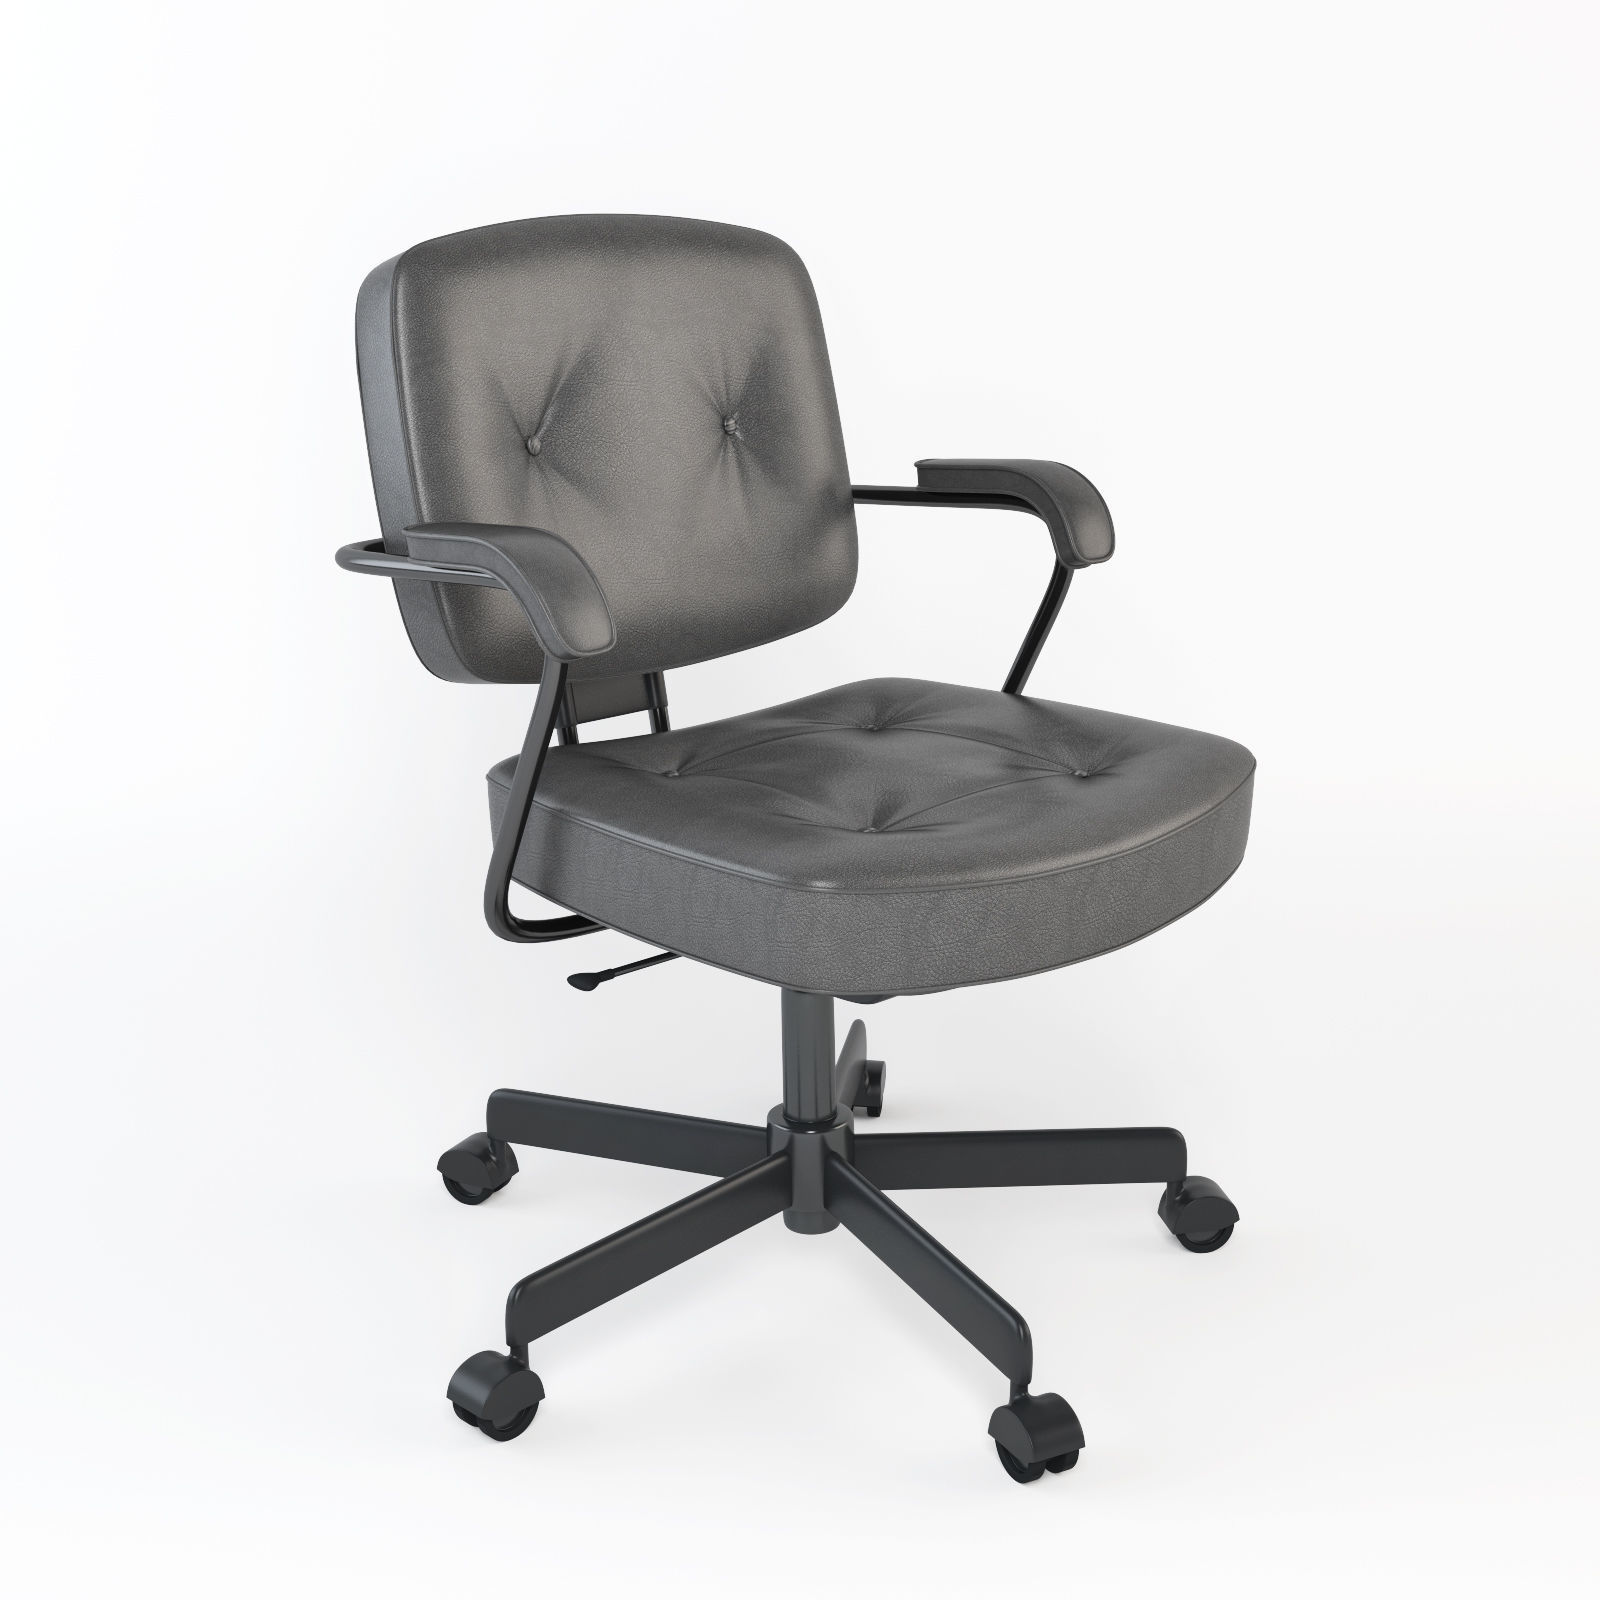 Charmant Office Chair Like Ikea Alefjall 3D Model